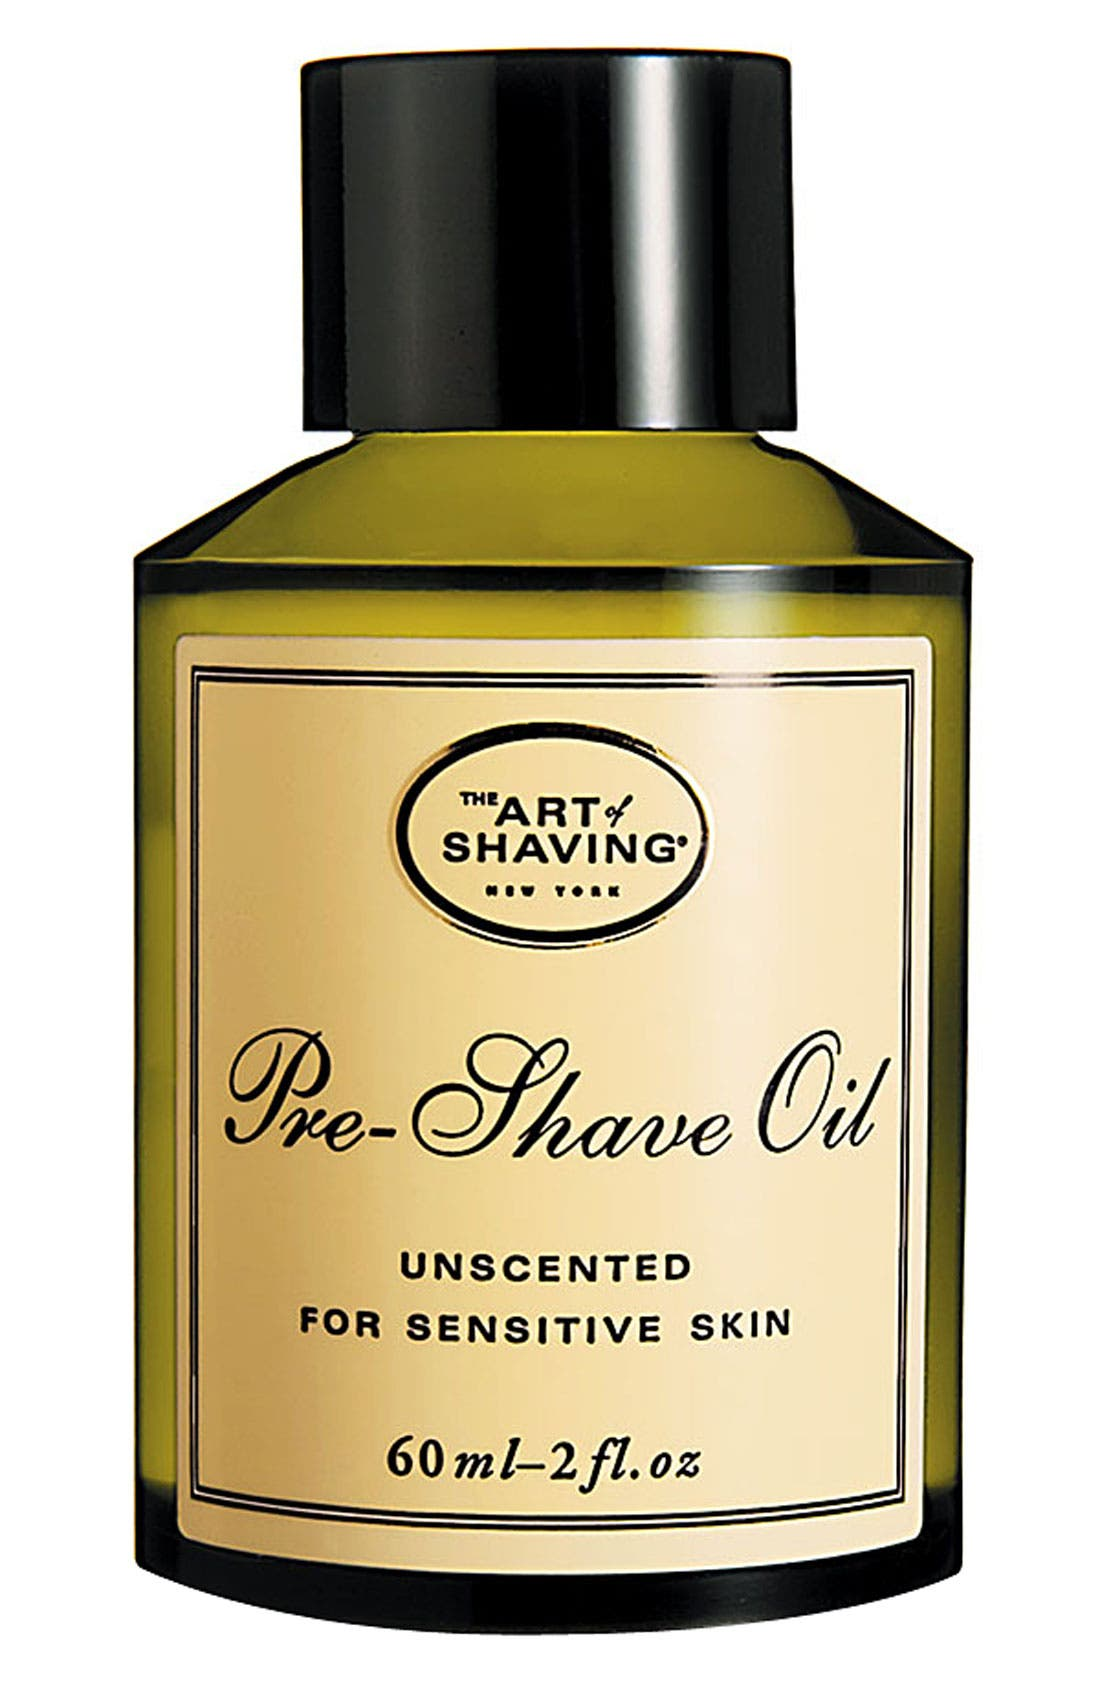 The Art of Shaving® Unscented Pre-Shave Oil